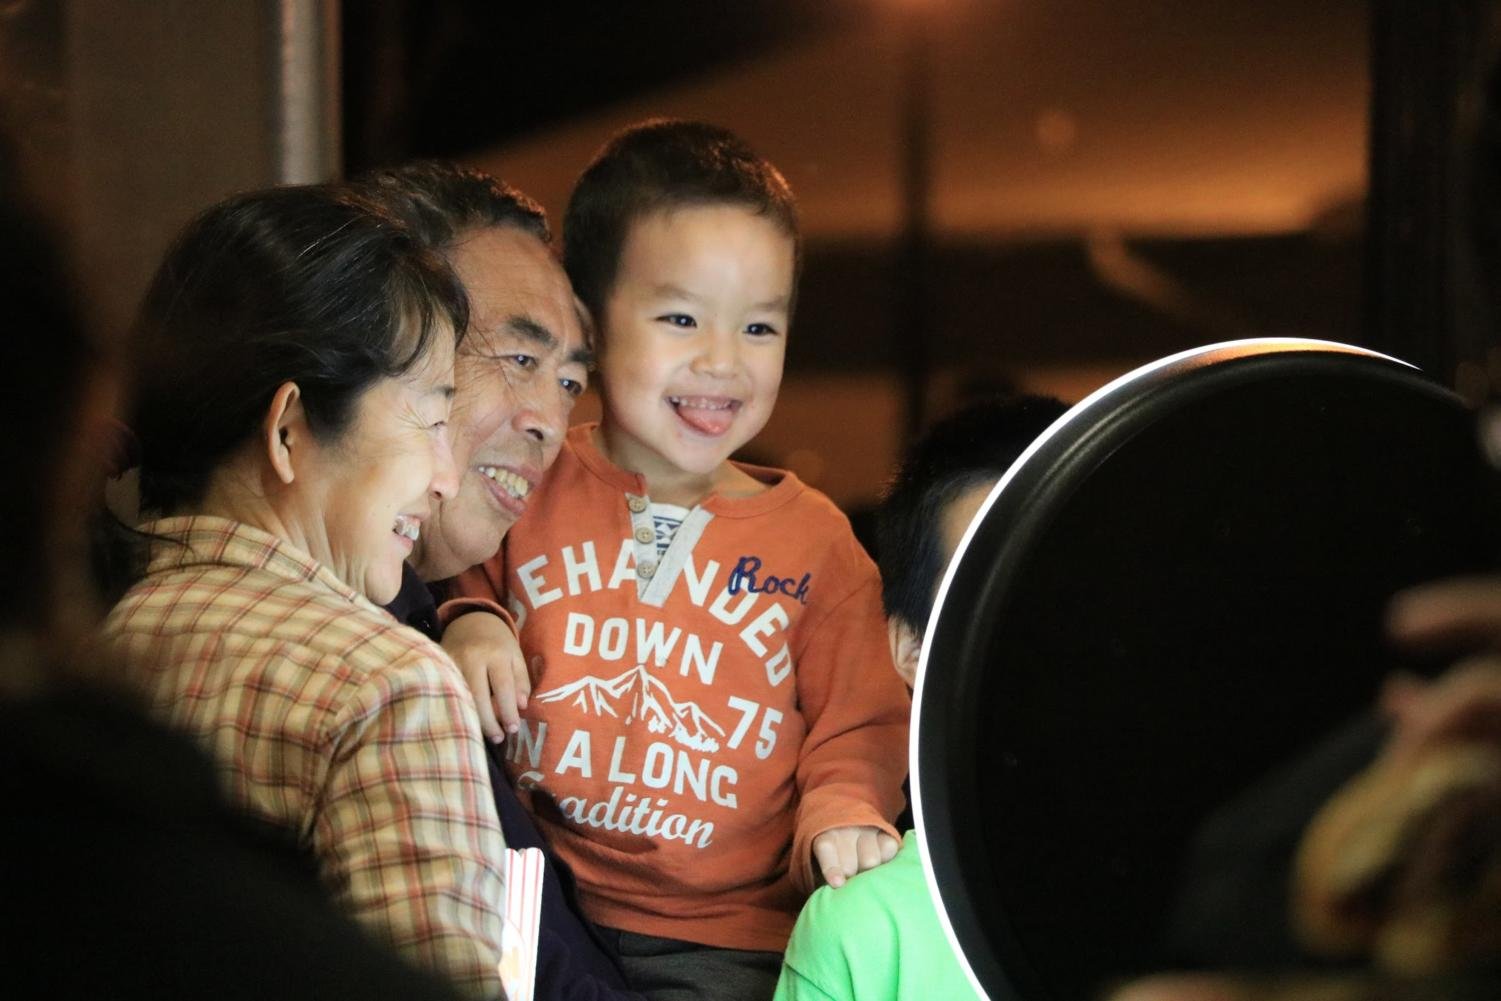 Coppell resident Xiaofangsui and her family take a picture with the selfie station at the Spring Music Series on March 8. The City of Coppell is hosting a series of nights with live music, food trucks and games in Old Town Coppell.